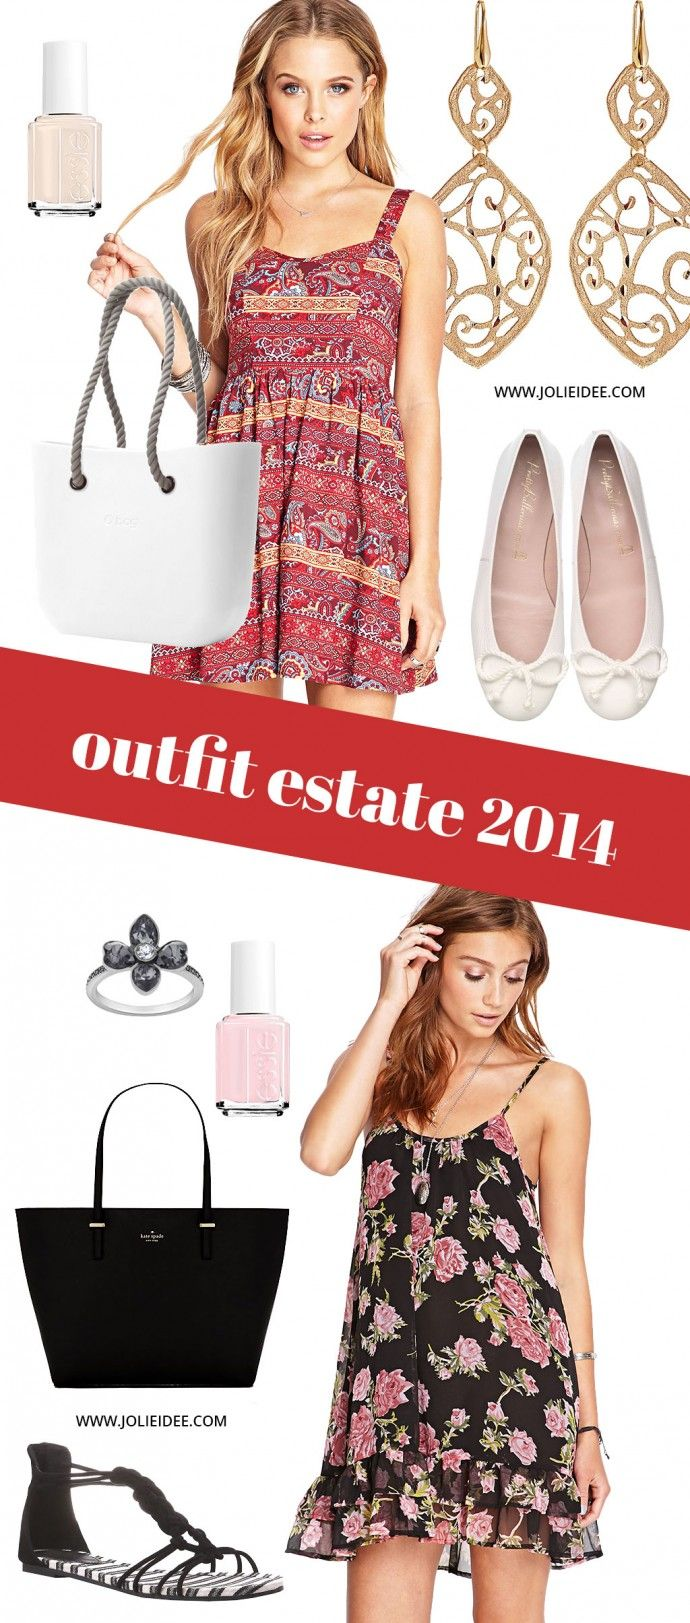 Outfit Estate 2014 - 2 Total Look da copiare #outfit #look #makeup #dress #summer #shoppingbag